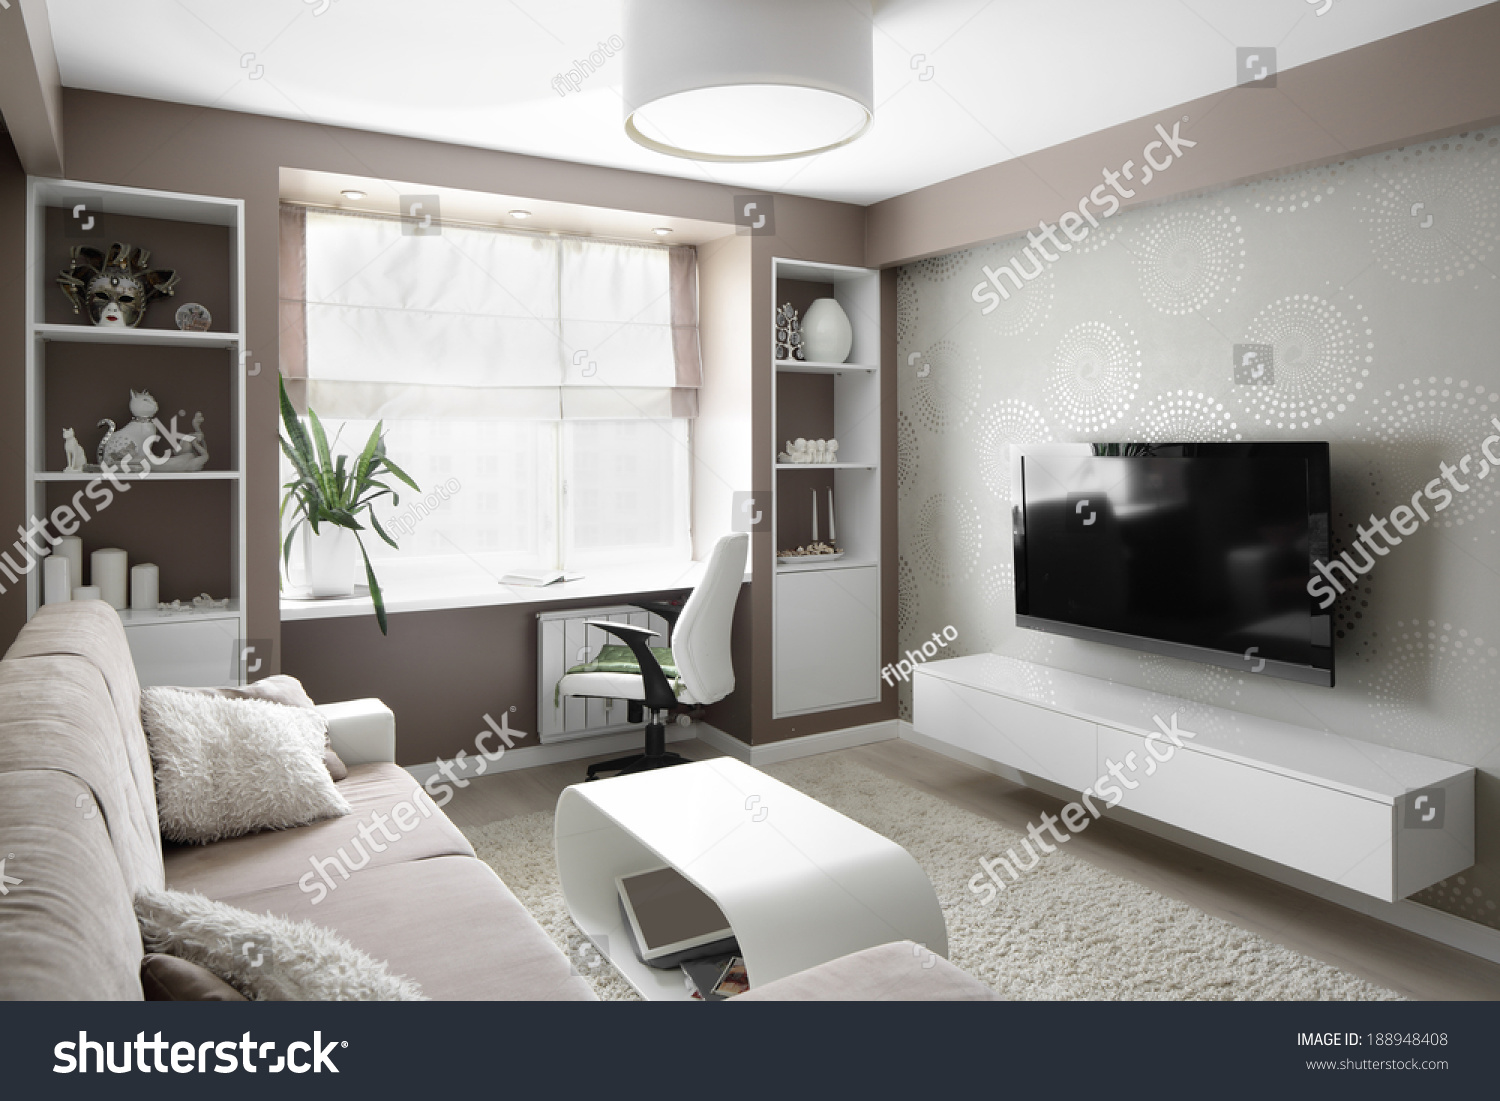 Big And Bright Interior Of Modern Living Room Stock Photo